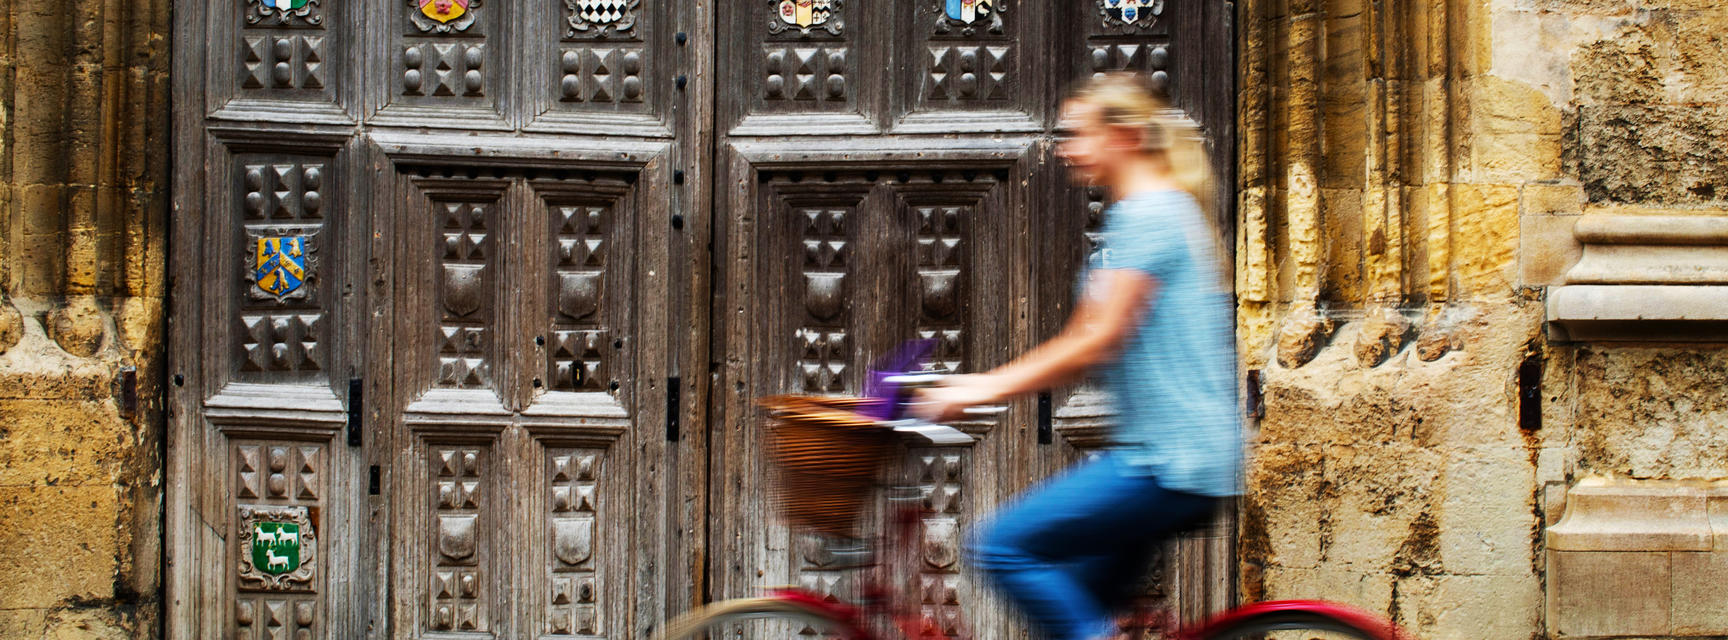 Blurred person cycling in front Oxford University college wooden gate